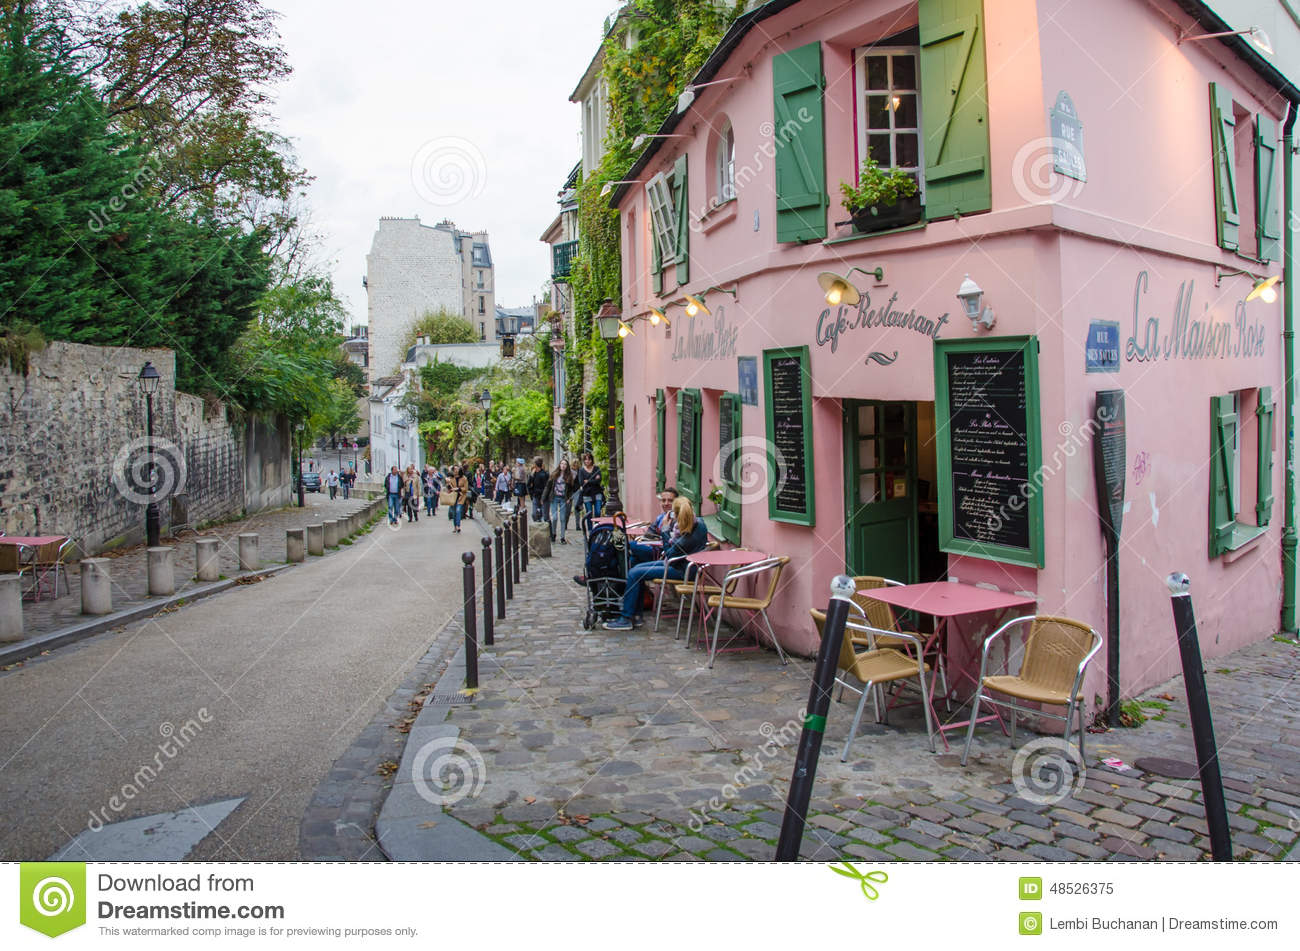 Paris france october 9 2014 a couple is enjoying their leisurely lunch at la maison rose cafe restaurant in the historic montmartre neighborhood